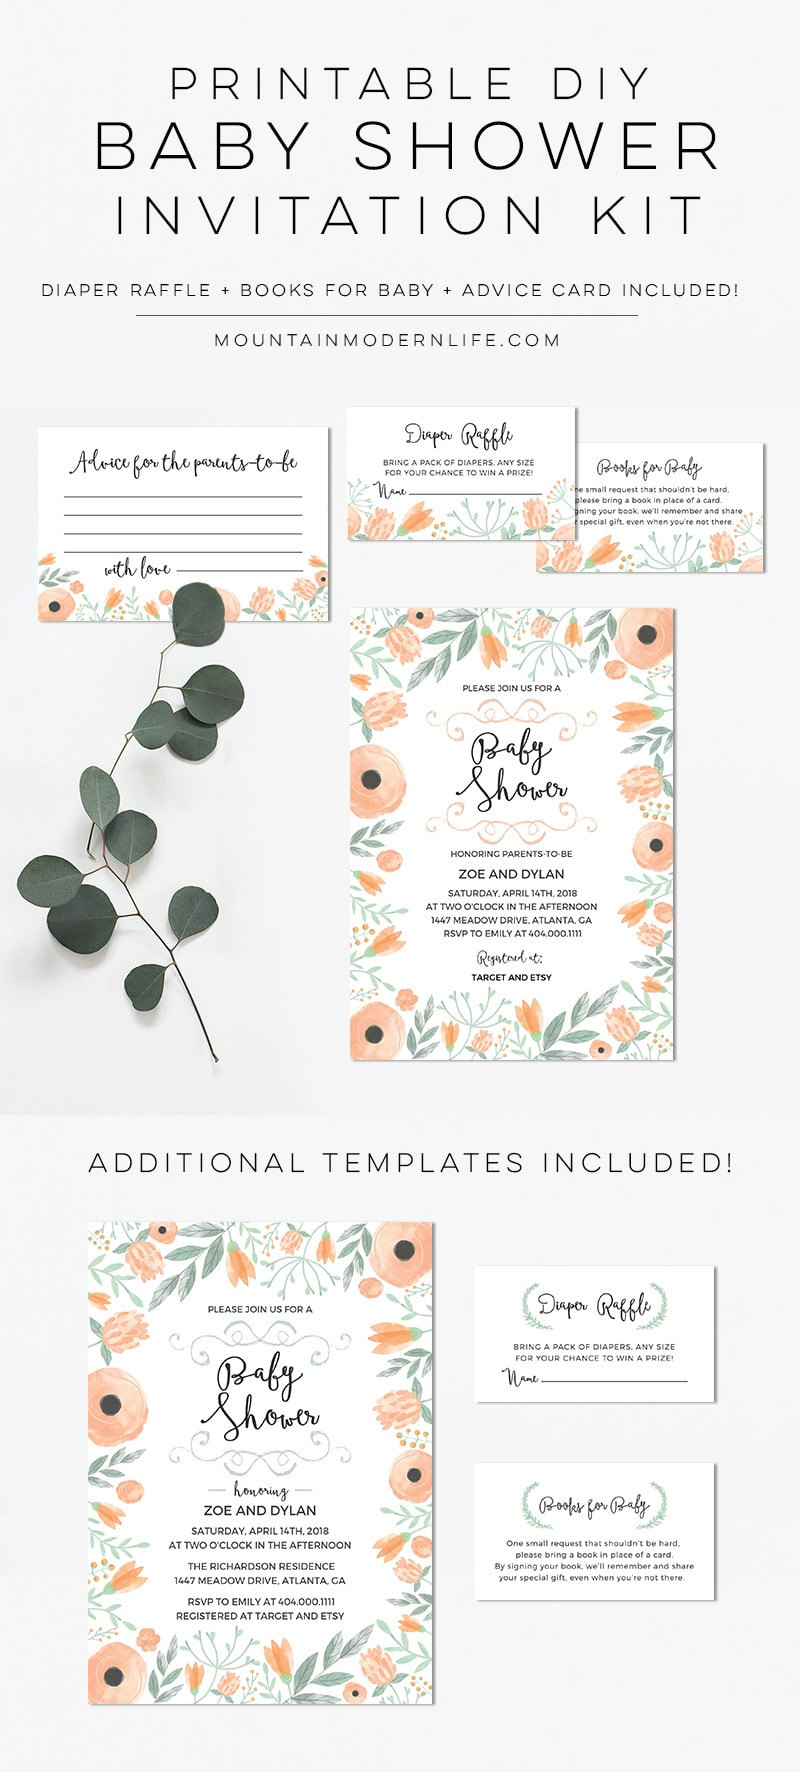 Diy Baby Shower Invitations Kits  Printable Floral DIY Baby Shower Invitation Kit